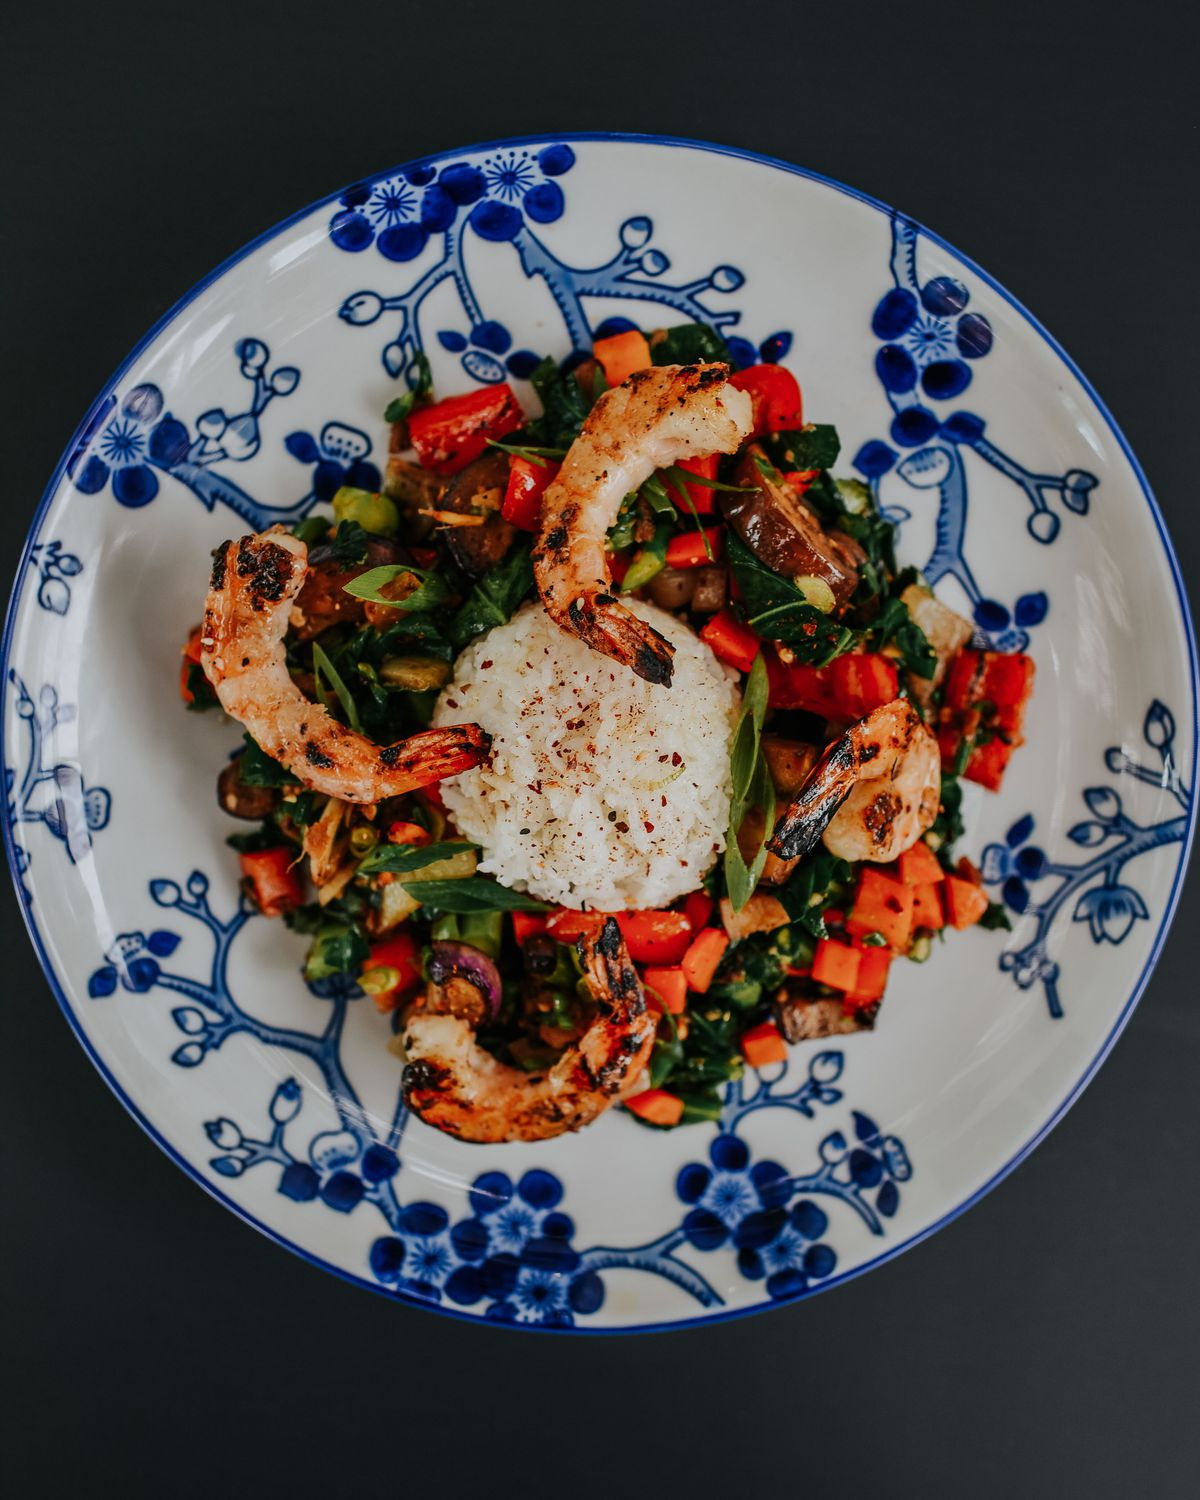 A blue and white Chinese floral patterned plate with Imperial shrimp stir-fry and neat dollop of white rice in the center from Mow's Chinese Kitchen in Alpharetta, GA